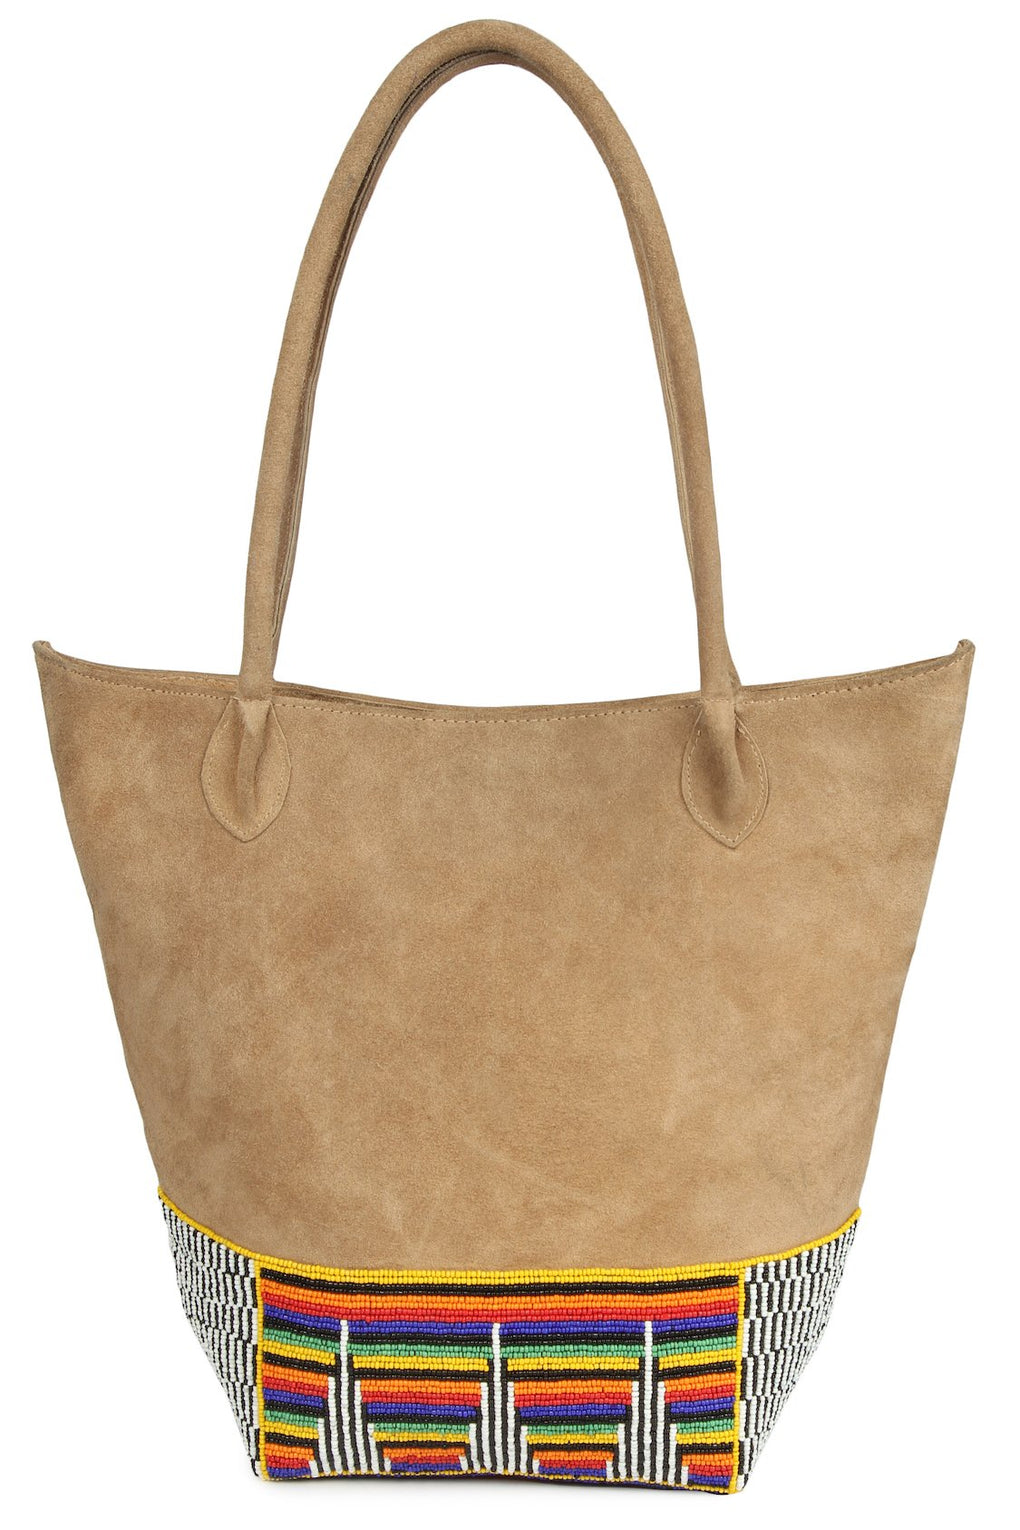 Aaliyah Beige Suede Leather Hand Embroidered Bag